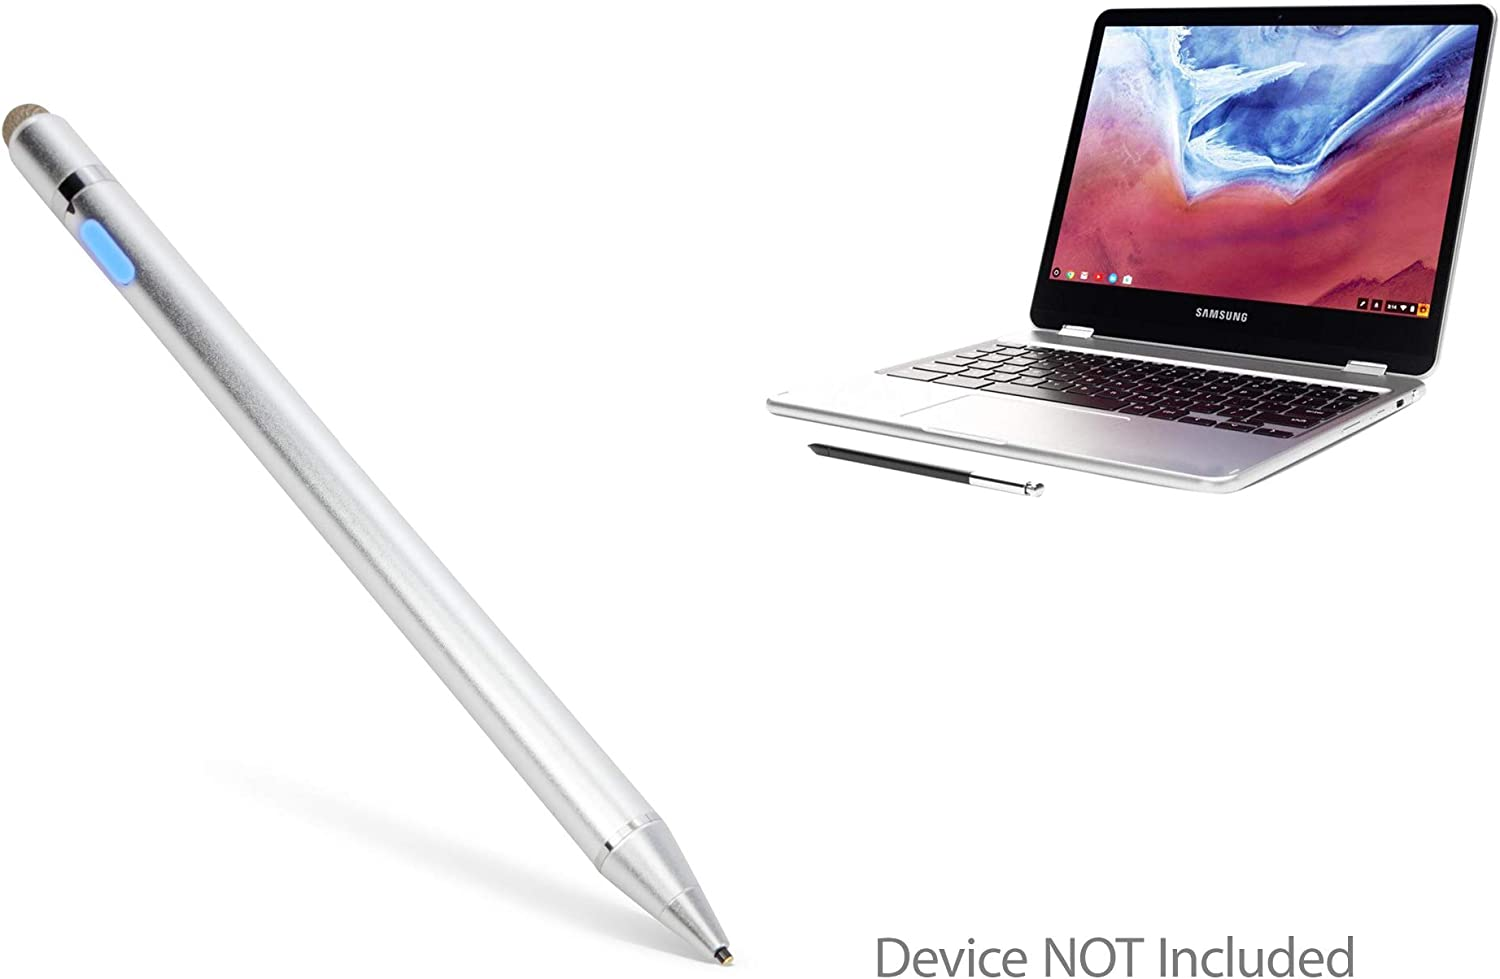 Compatible with The/Samsung Galaxy Xcover 4s Broonel Red Fine Point Digital Active Stylus Pen